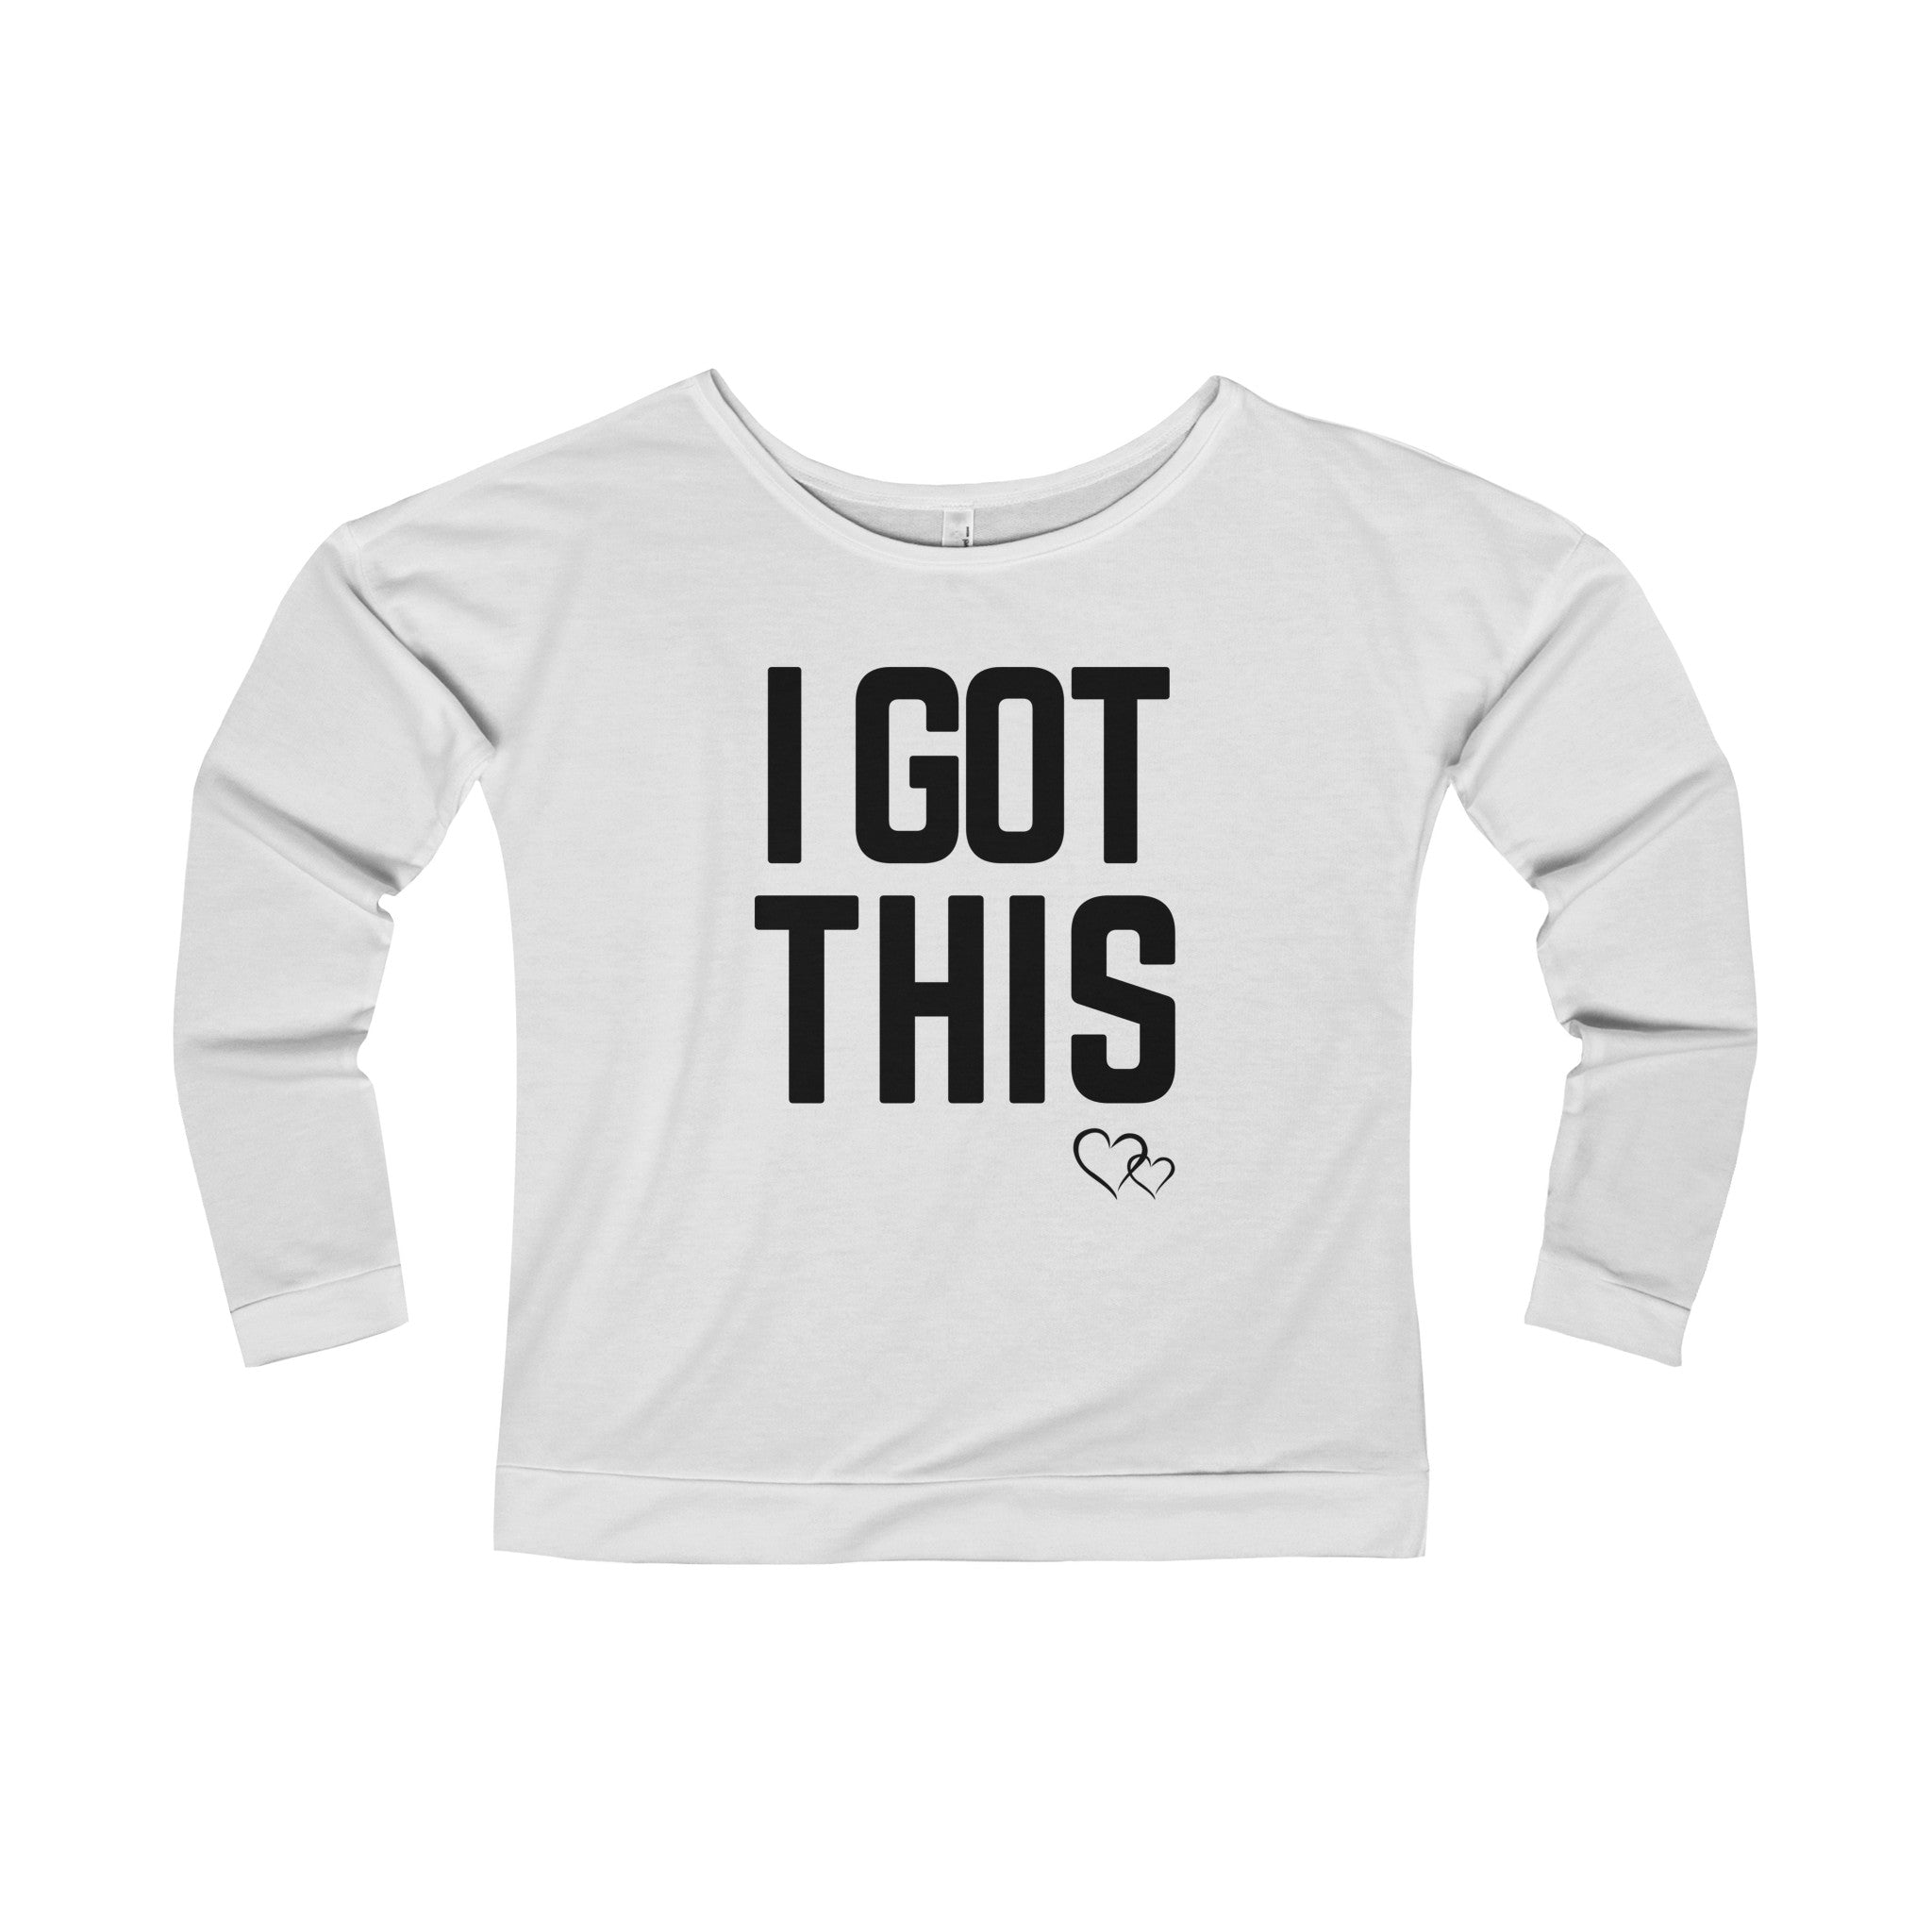 I GOT THIS - Long Sleeve Scoop Terry T